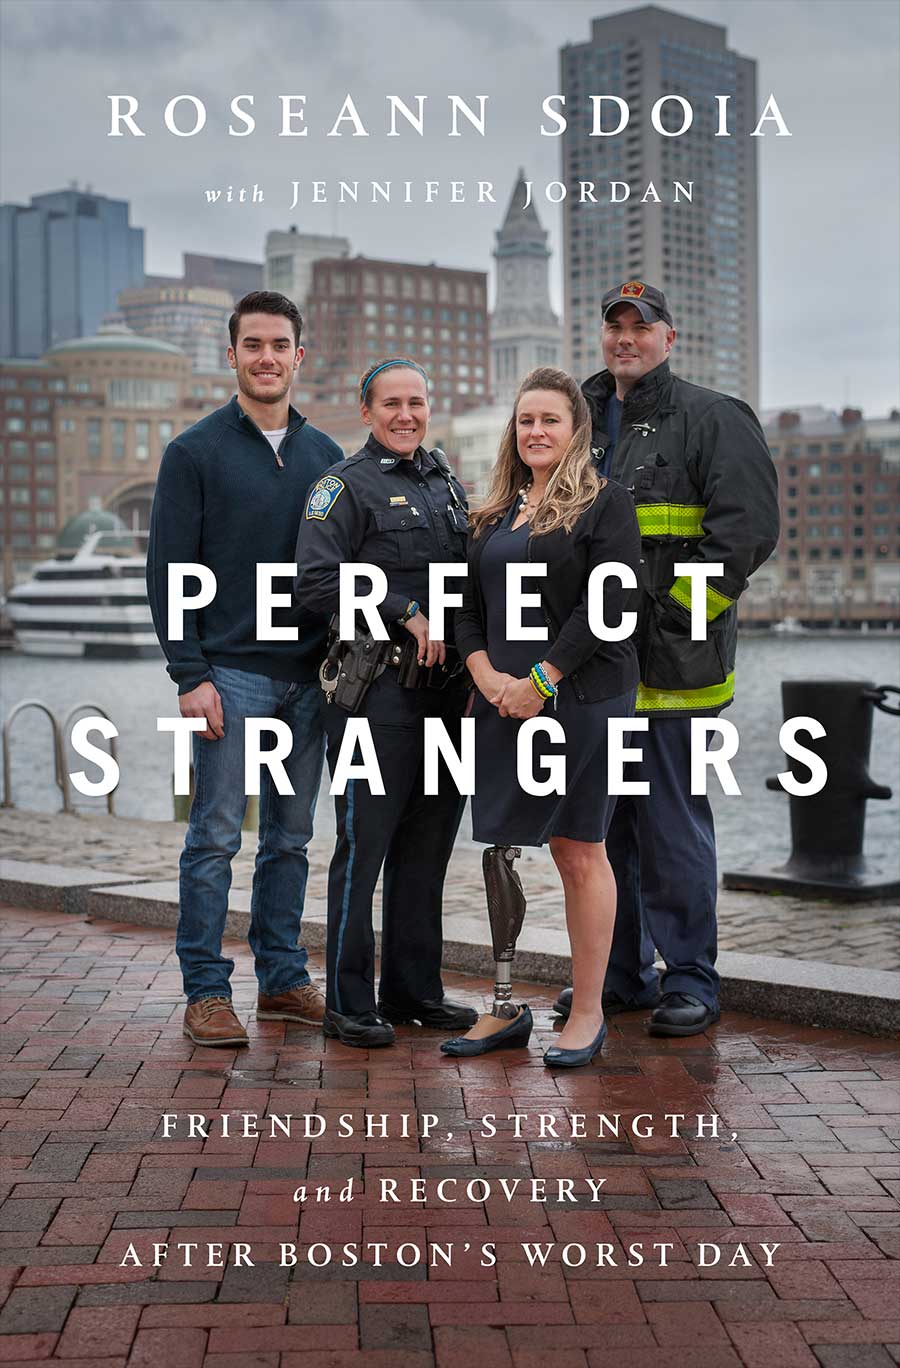 roseann sdoia perfect strangers book cover